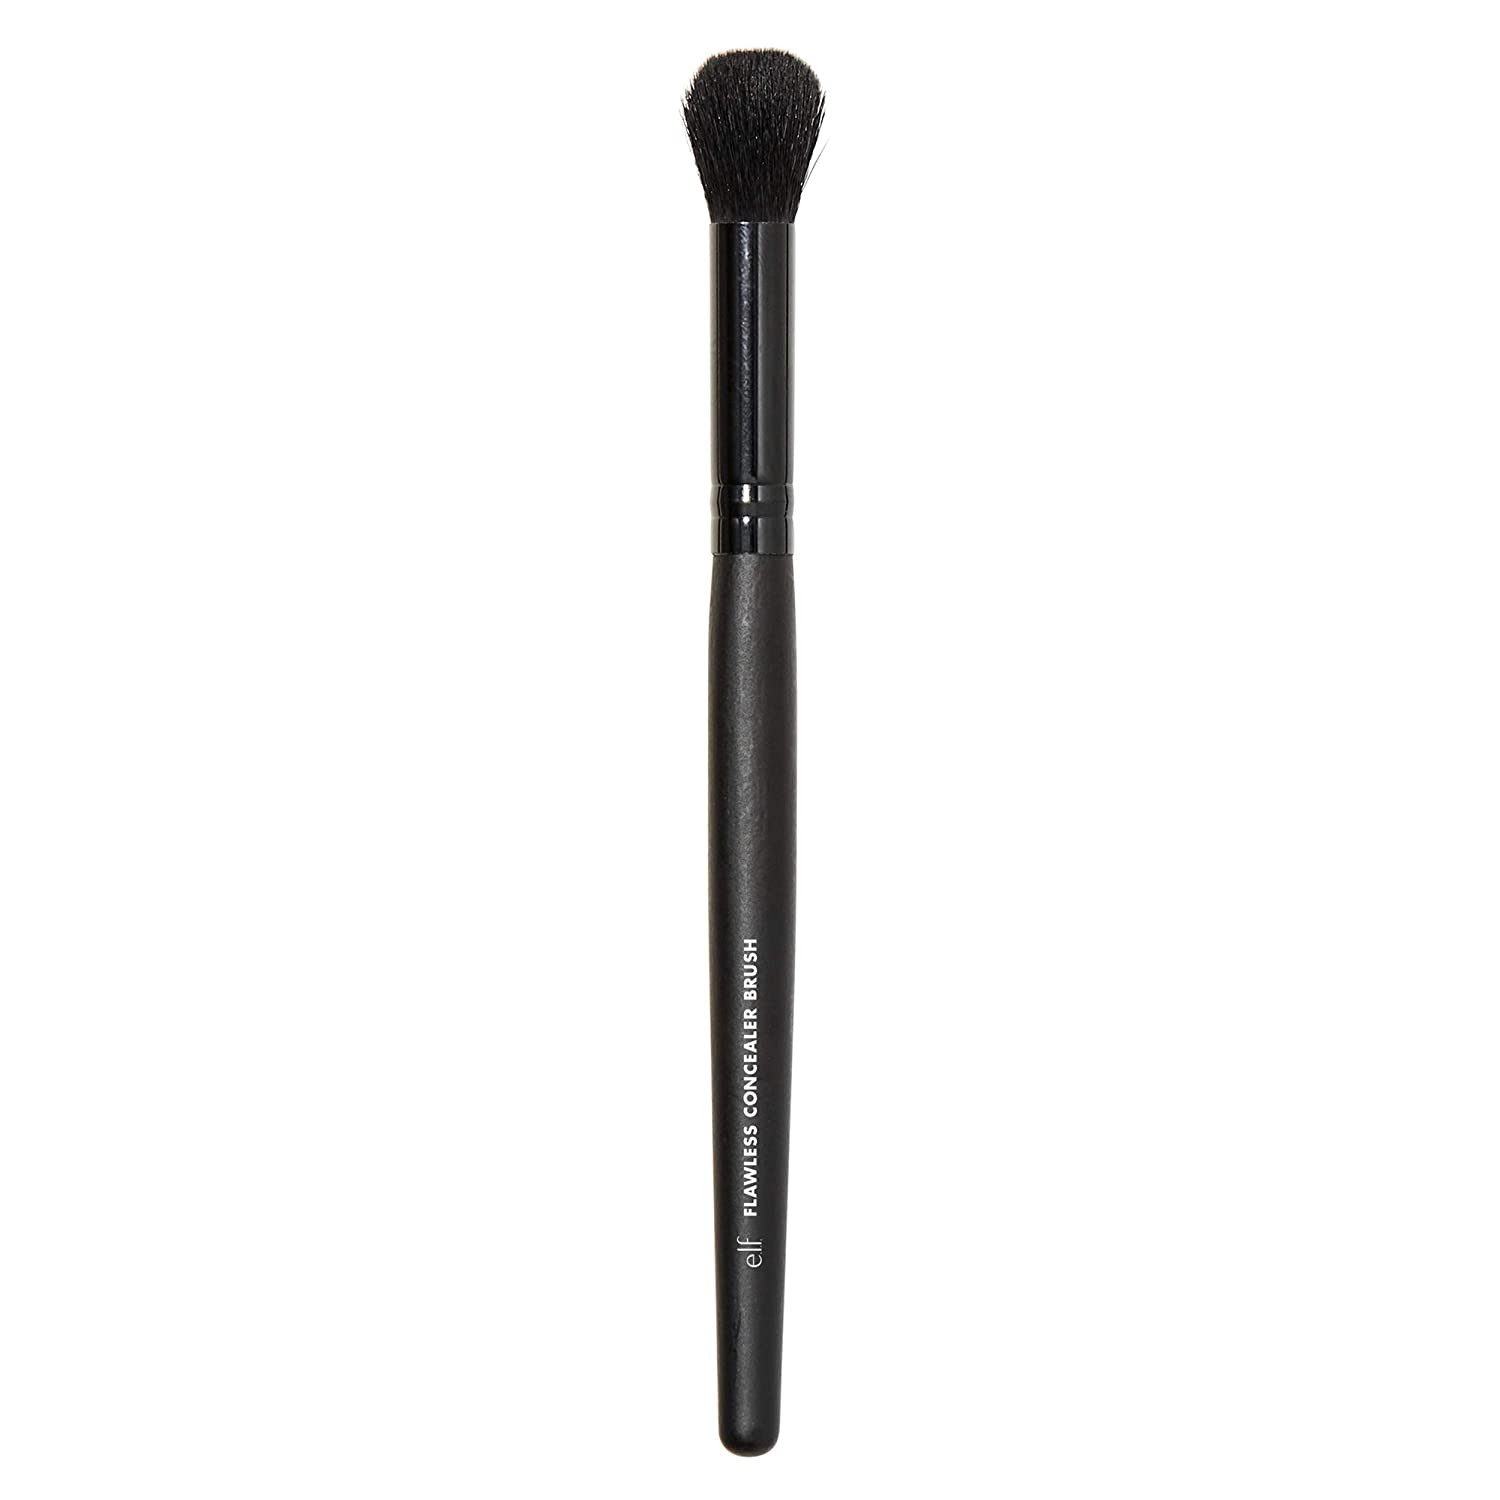 e.l.f. Flawless Concealer Brush for Precision Application, Synthetic